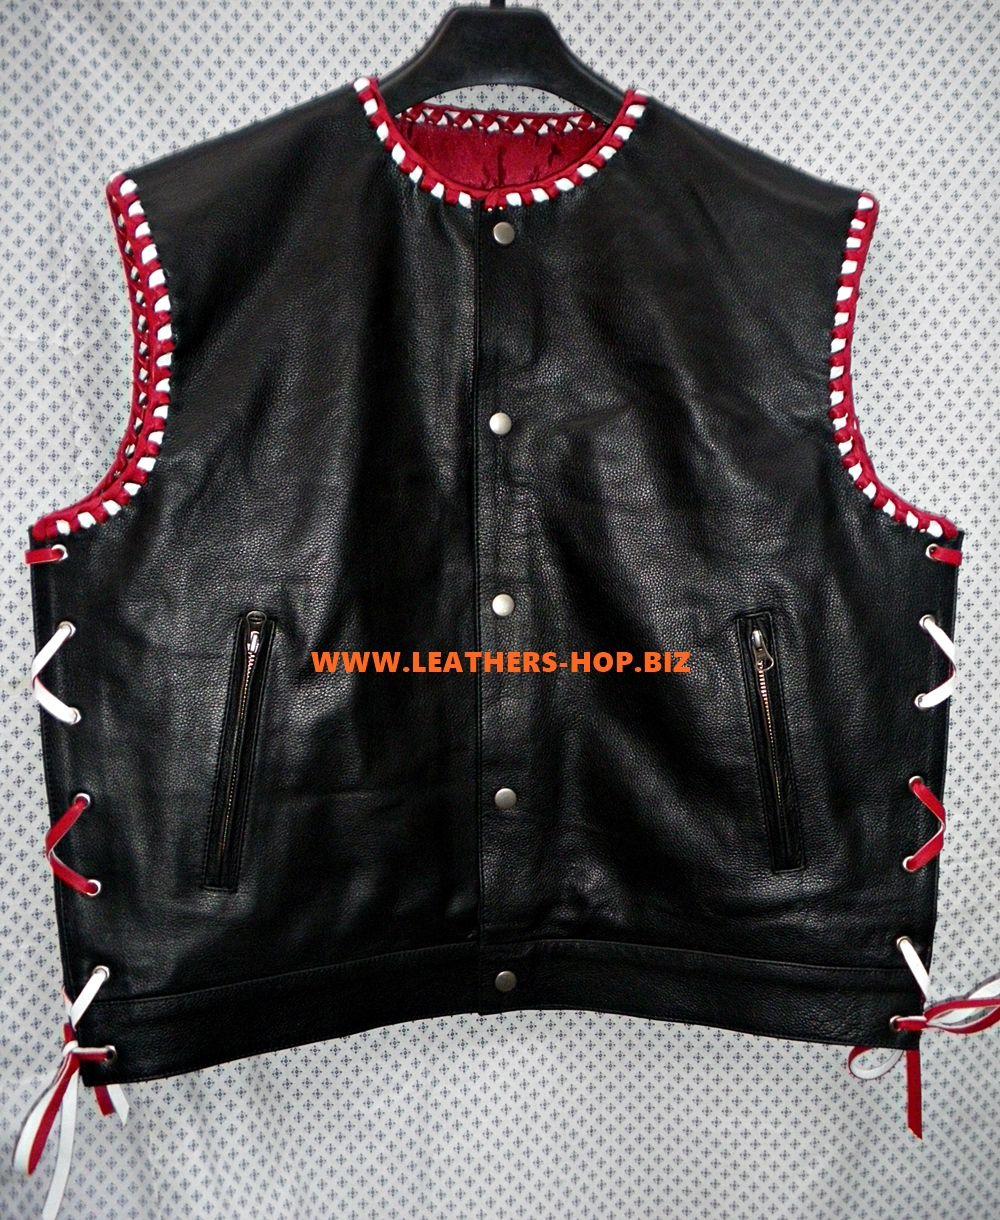 mens-leather-vest-braided-style-mlvb750rw-two-color-www.leather-shop.biz-front-pic.jpg